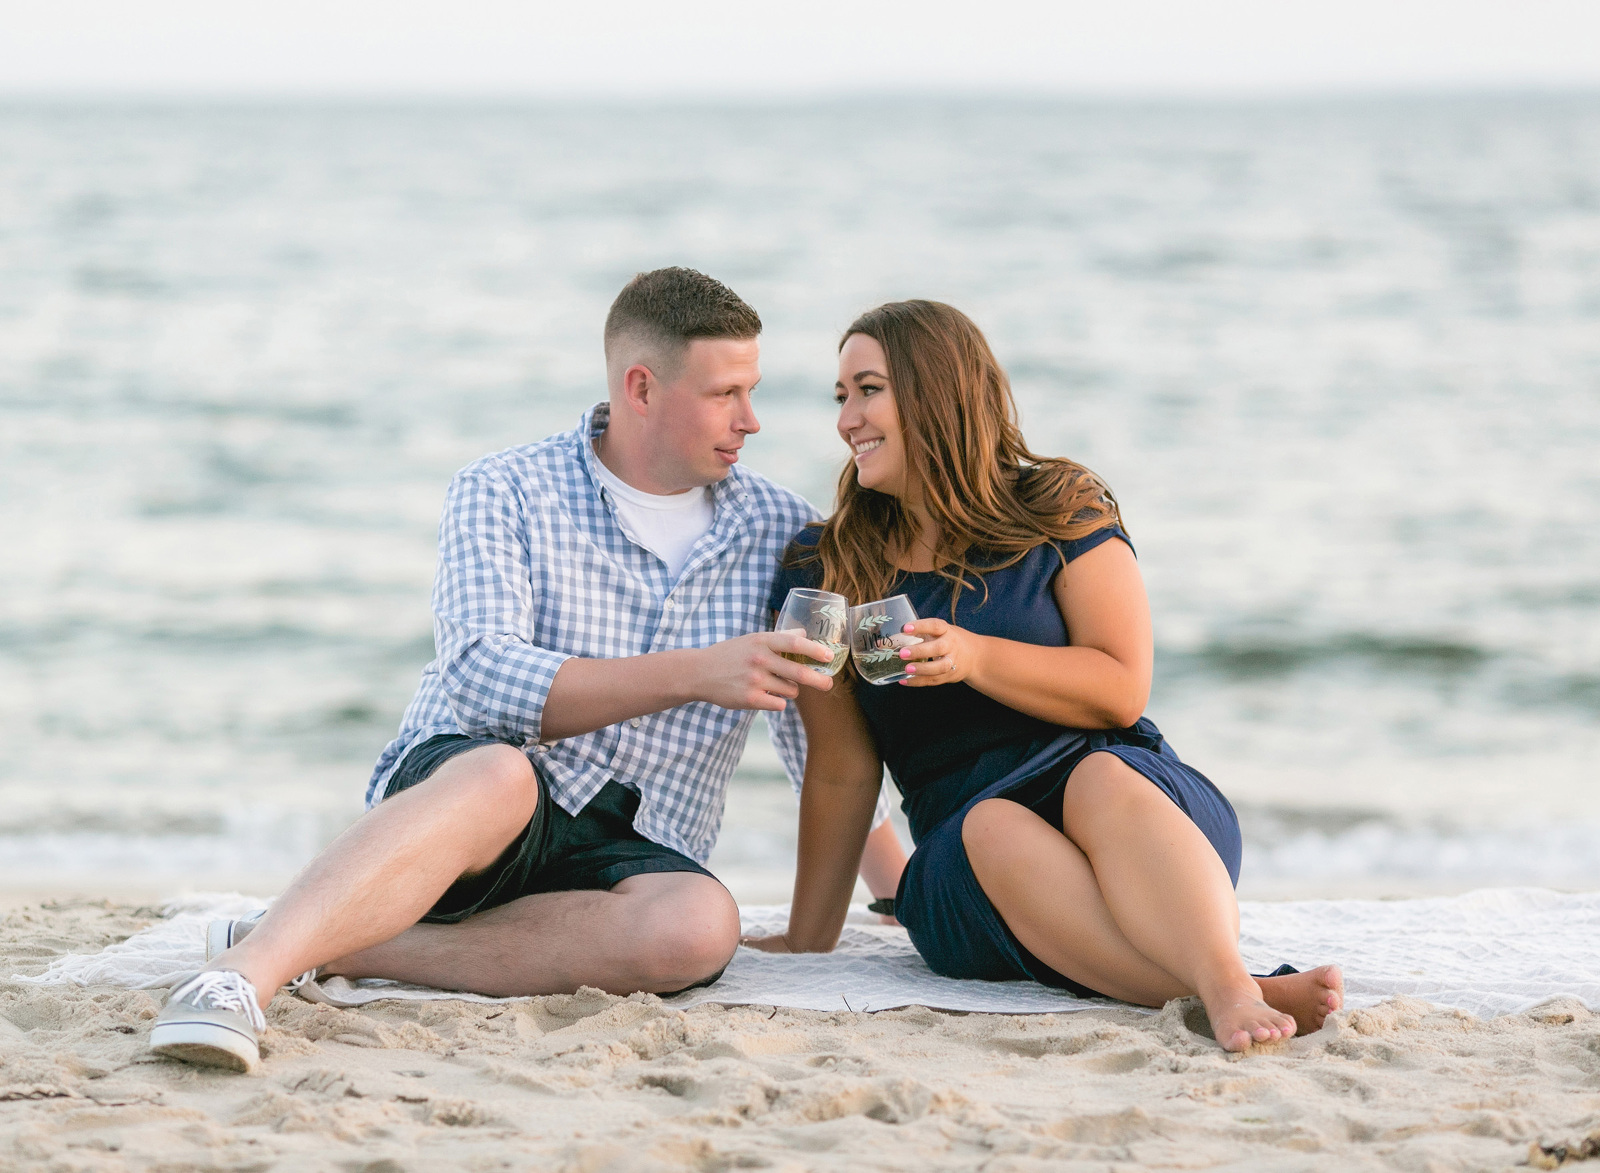 engagement session at a beach